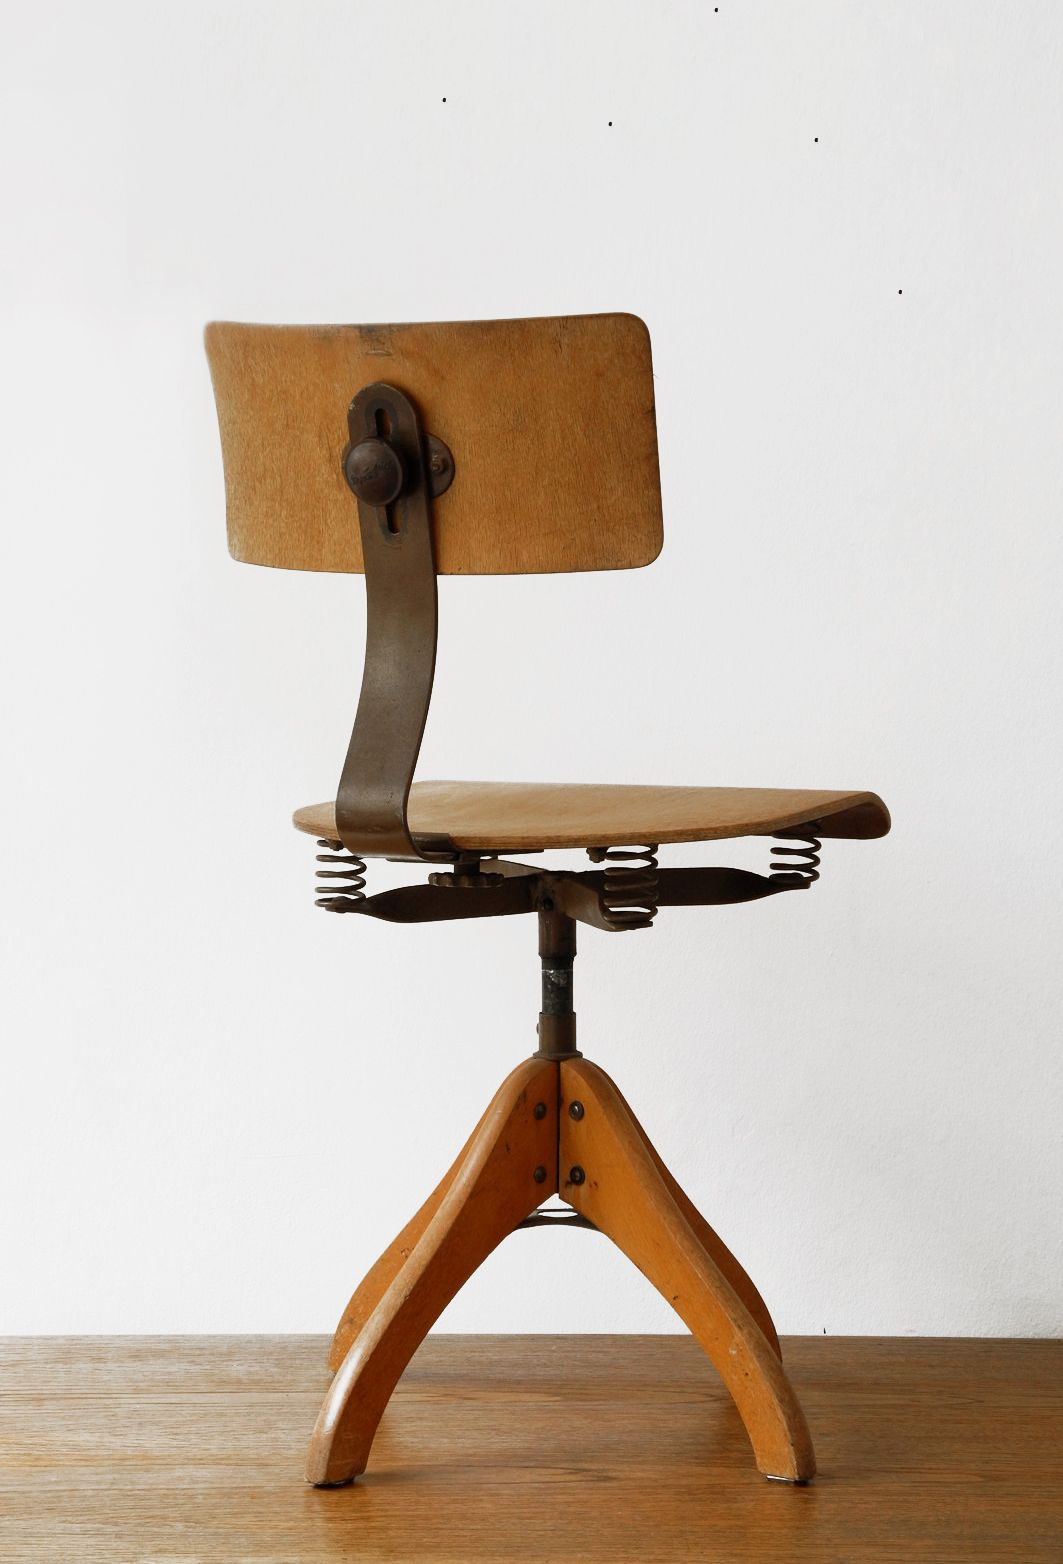 Vintage Swivel Chair Polstergleich Wooden Architects Swivel Chair Sold By Retroraum On